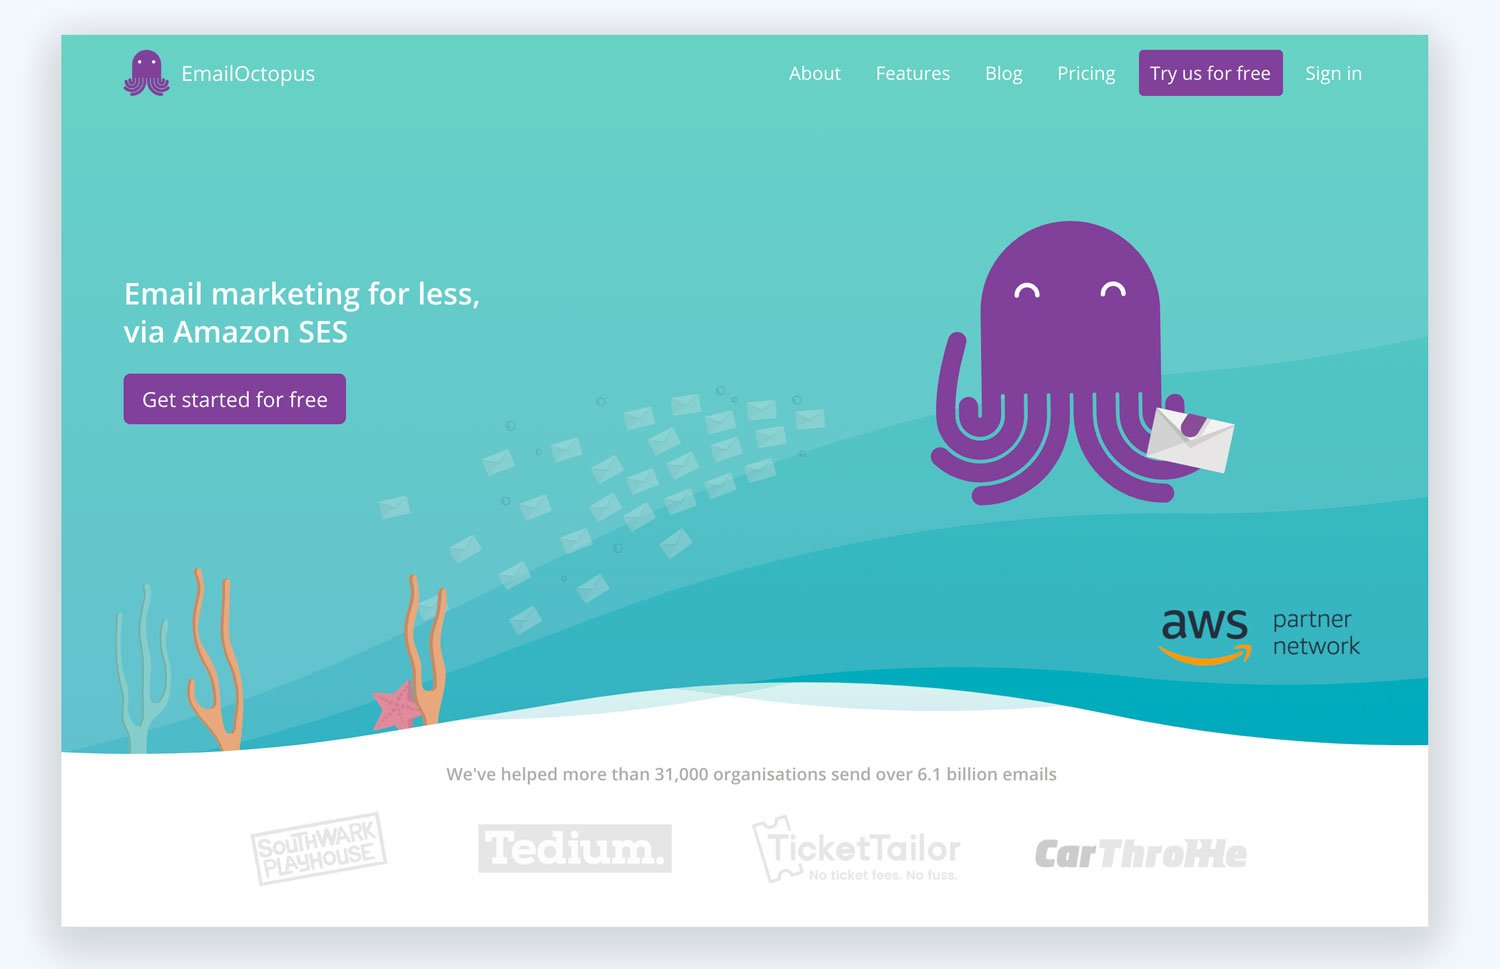 Email Octobus Email Marketing with Amazon SES